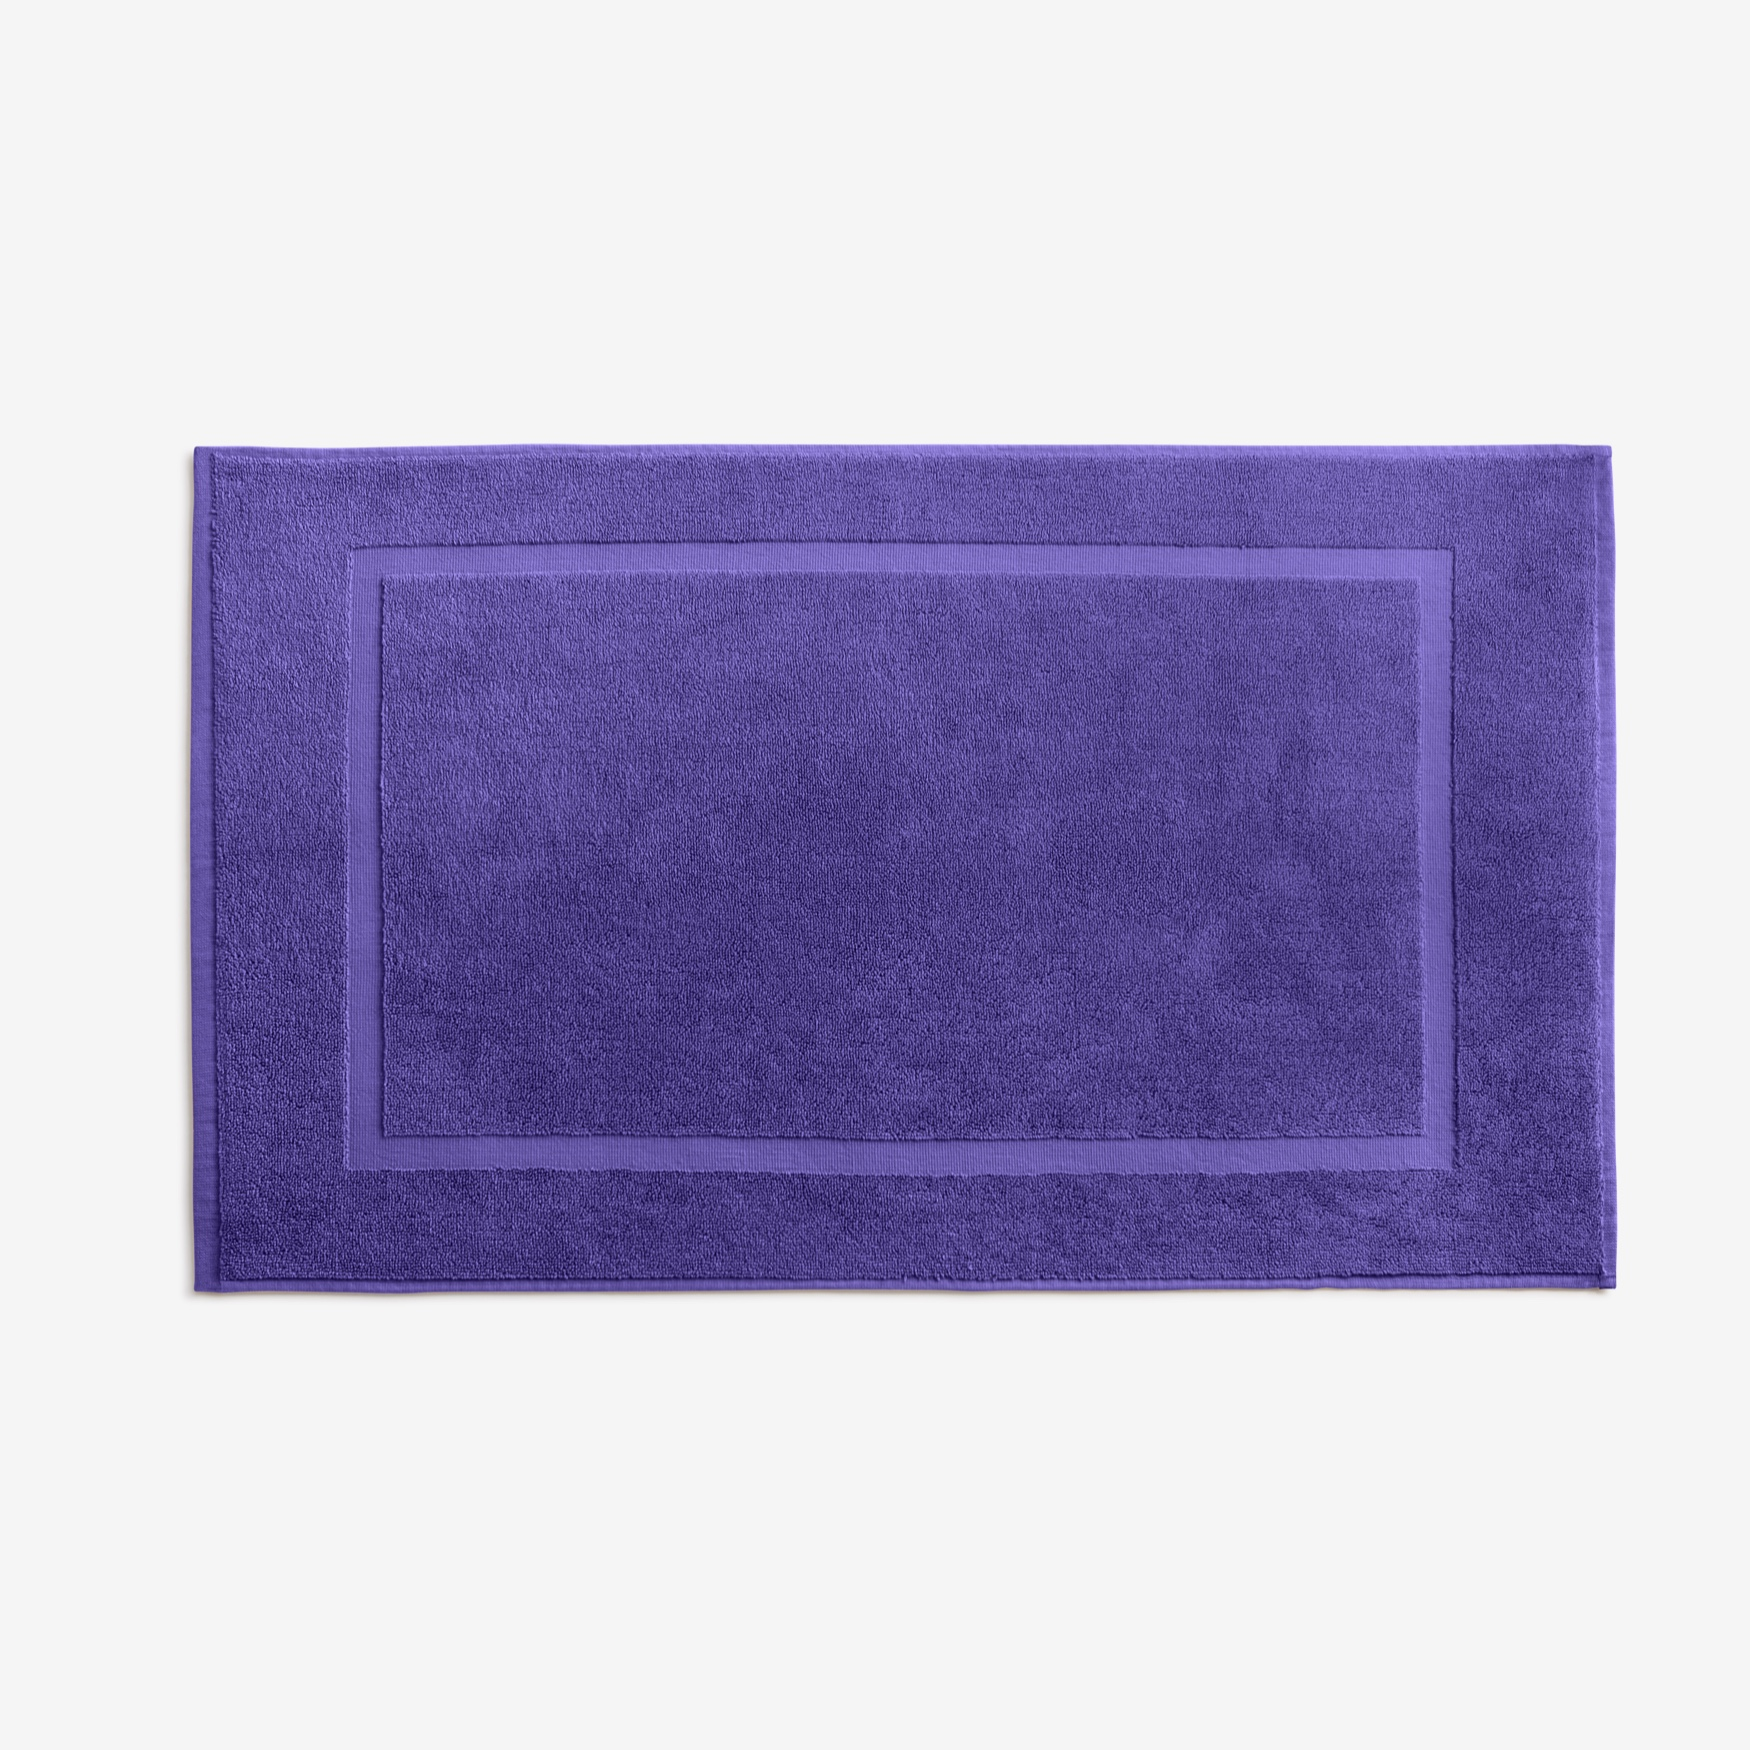 BH Studio Terry Bath Mat,